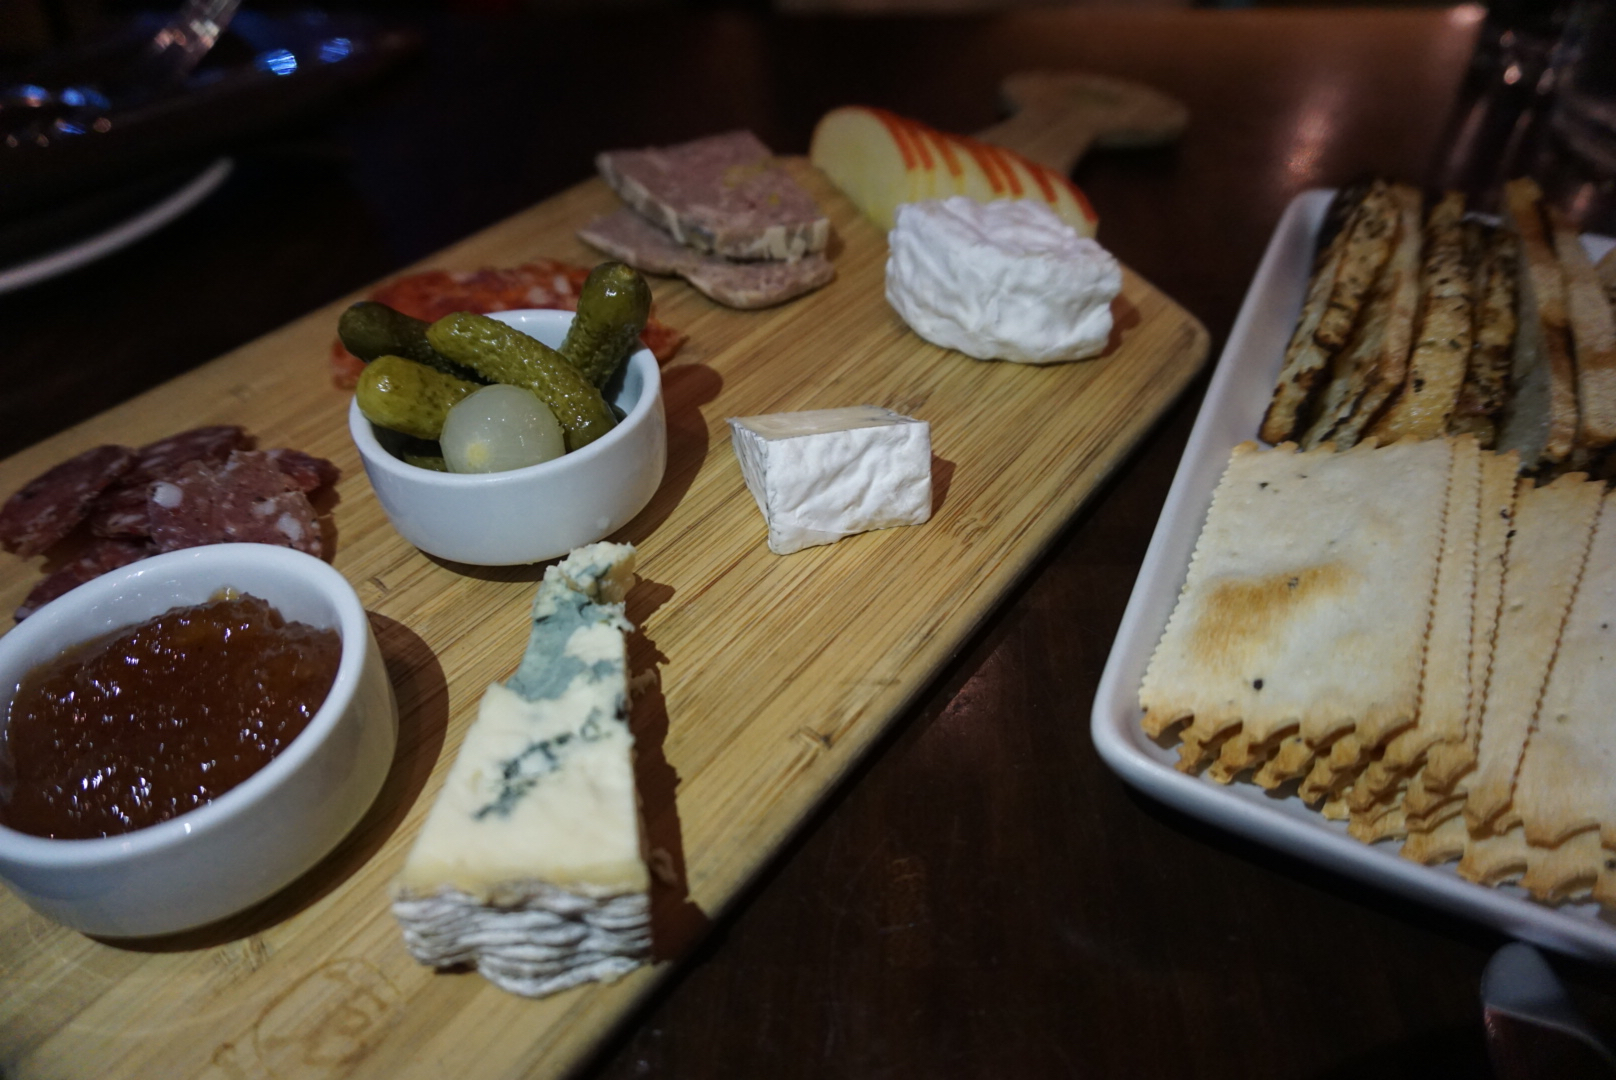 The charcuterie plate!